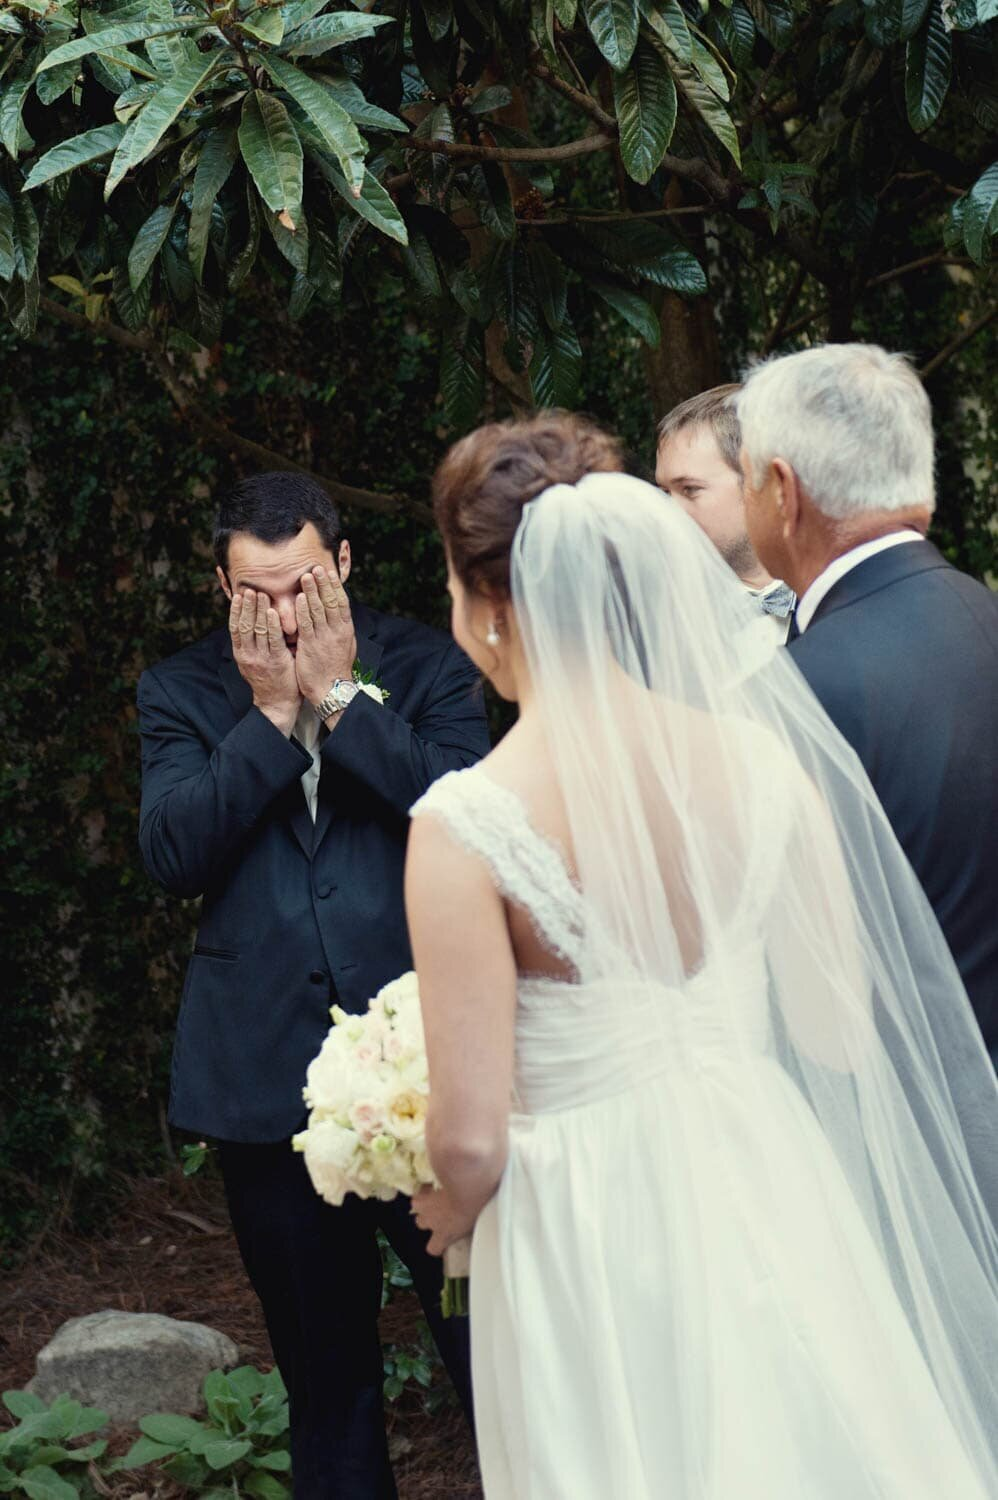 a groom cries and hides his face as his bride comes down the aisle